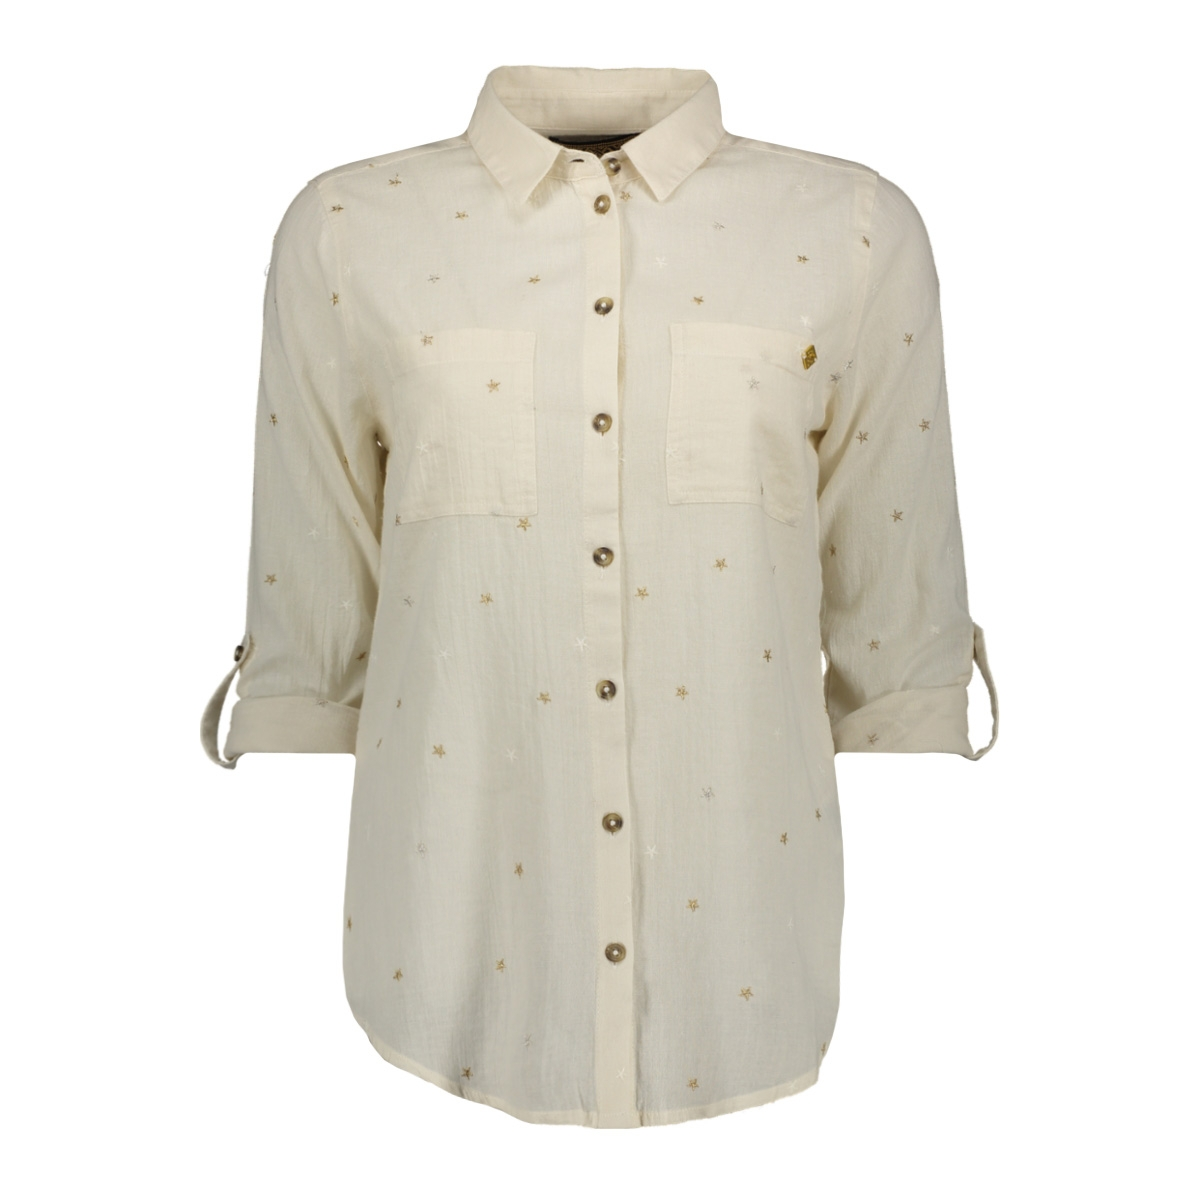 g40113ot superdry blouse white star